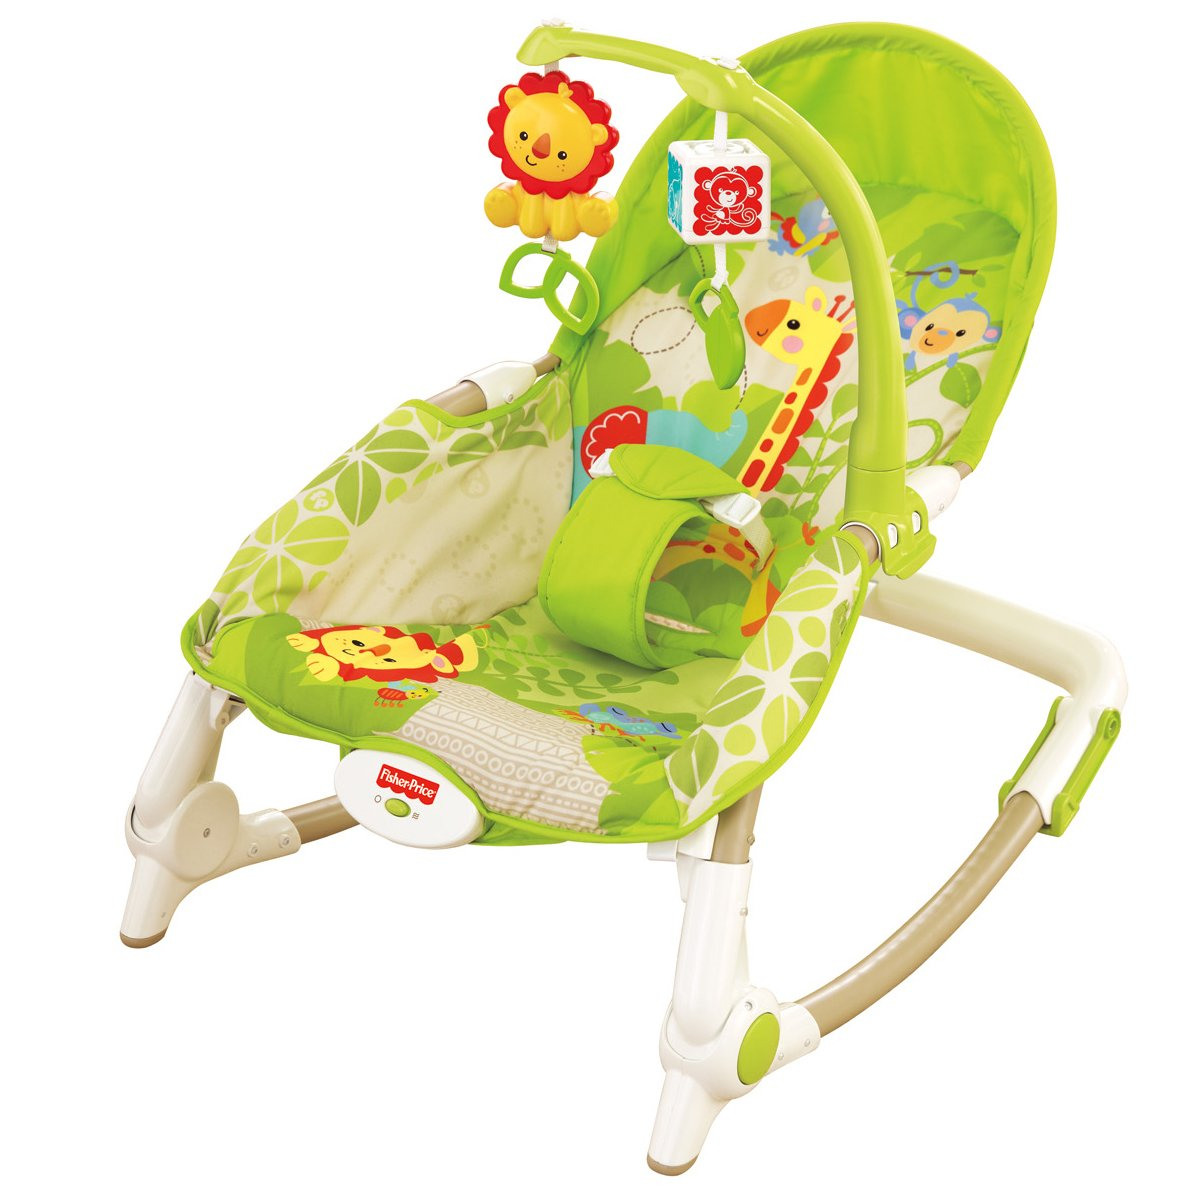 Adjustable Baby Bouncer Chair